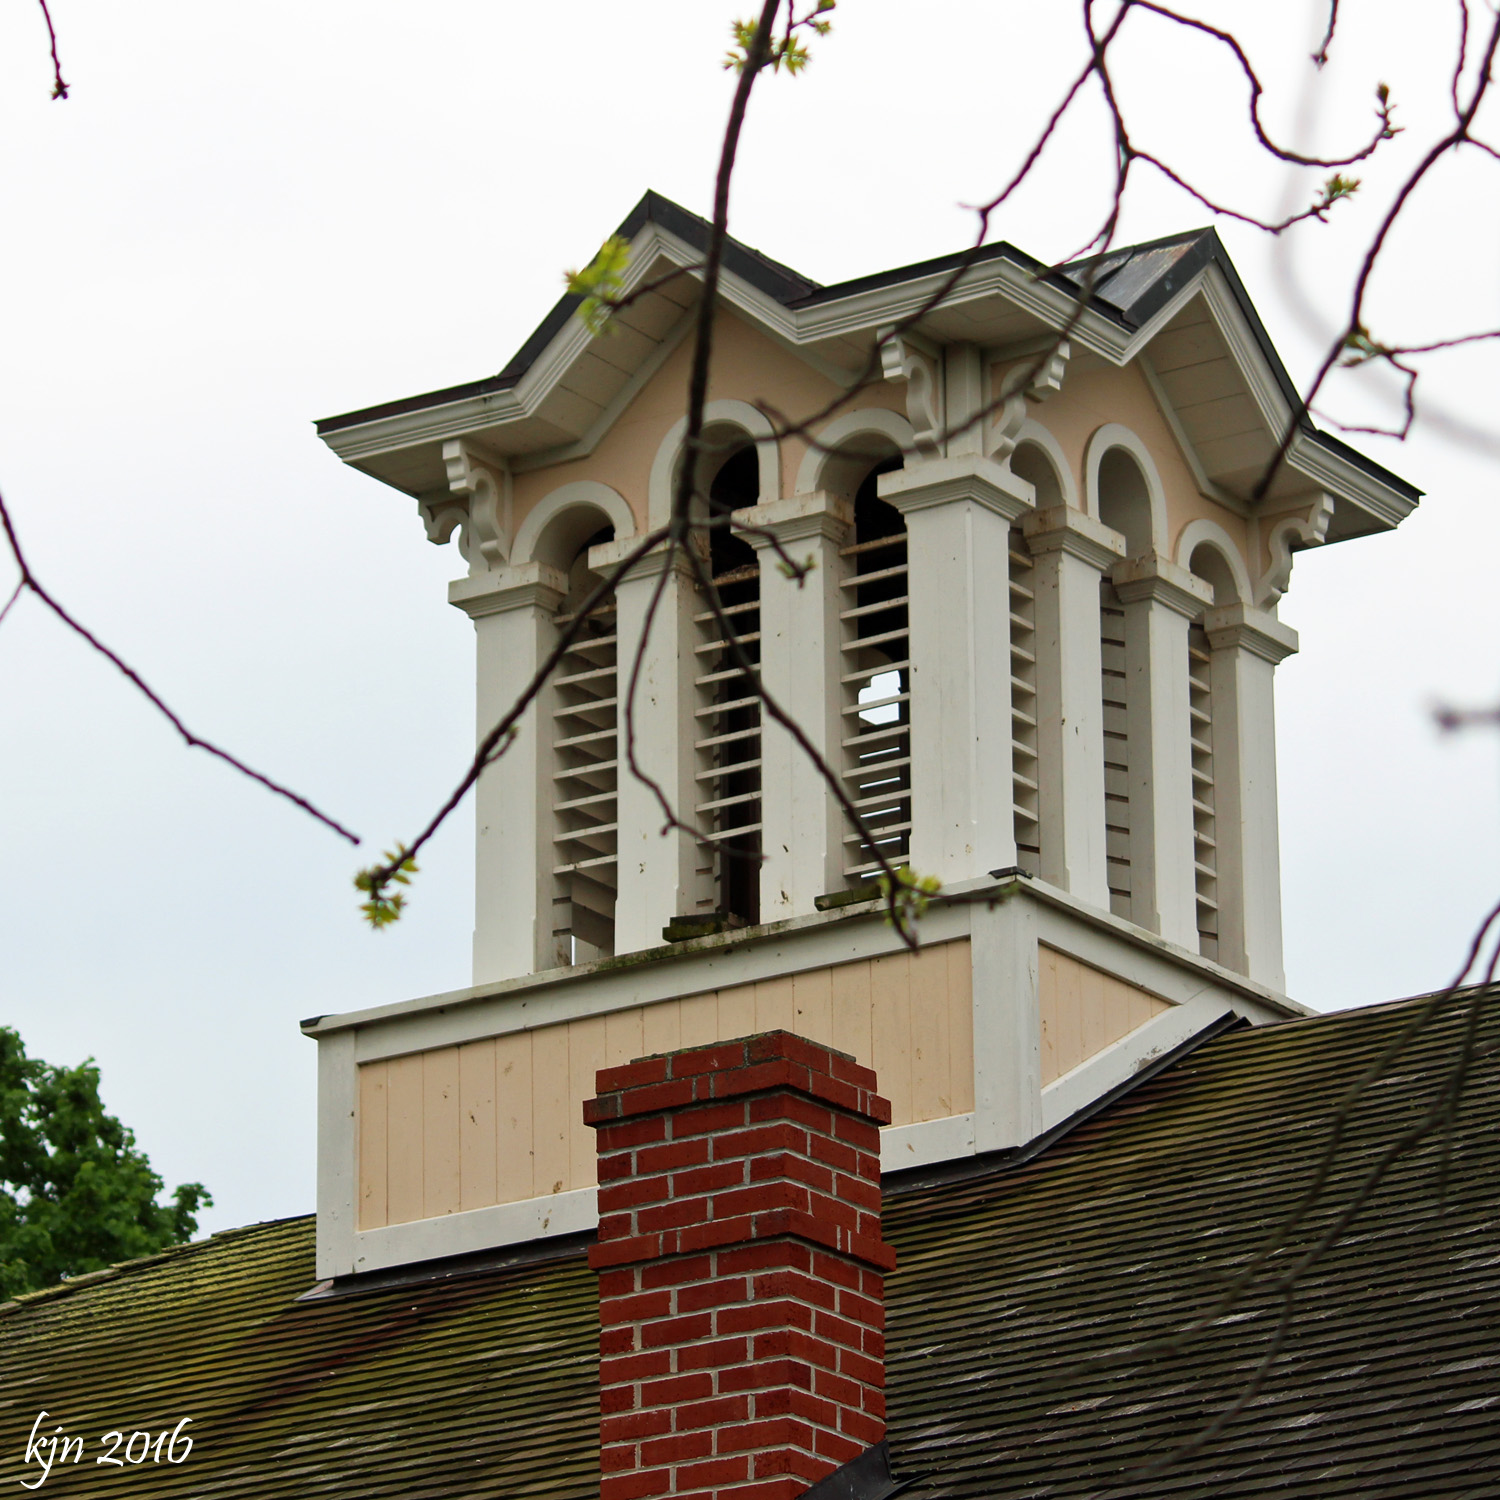 The outskirts of suburbia hatch house cupola for Cupola house